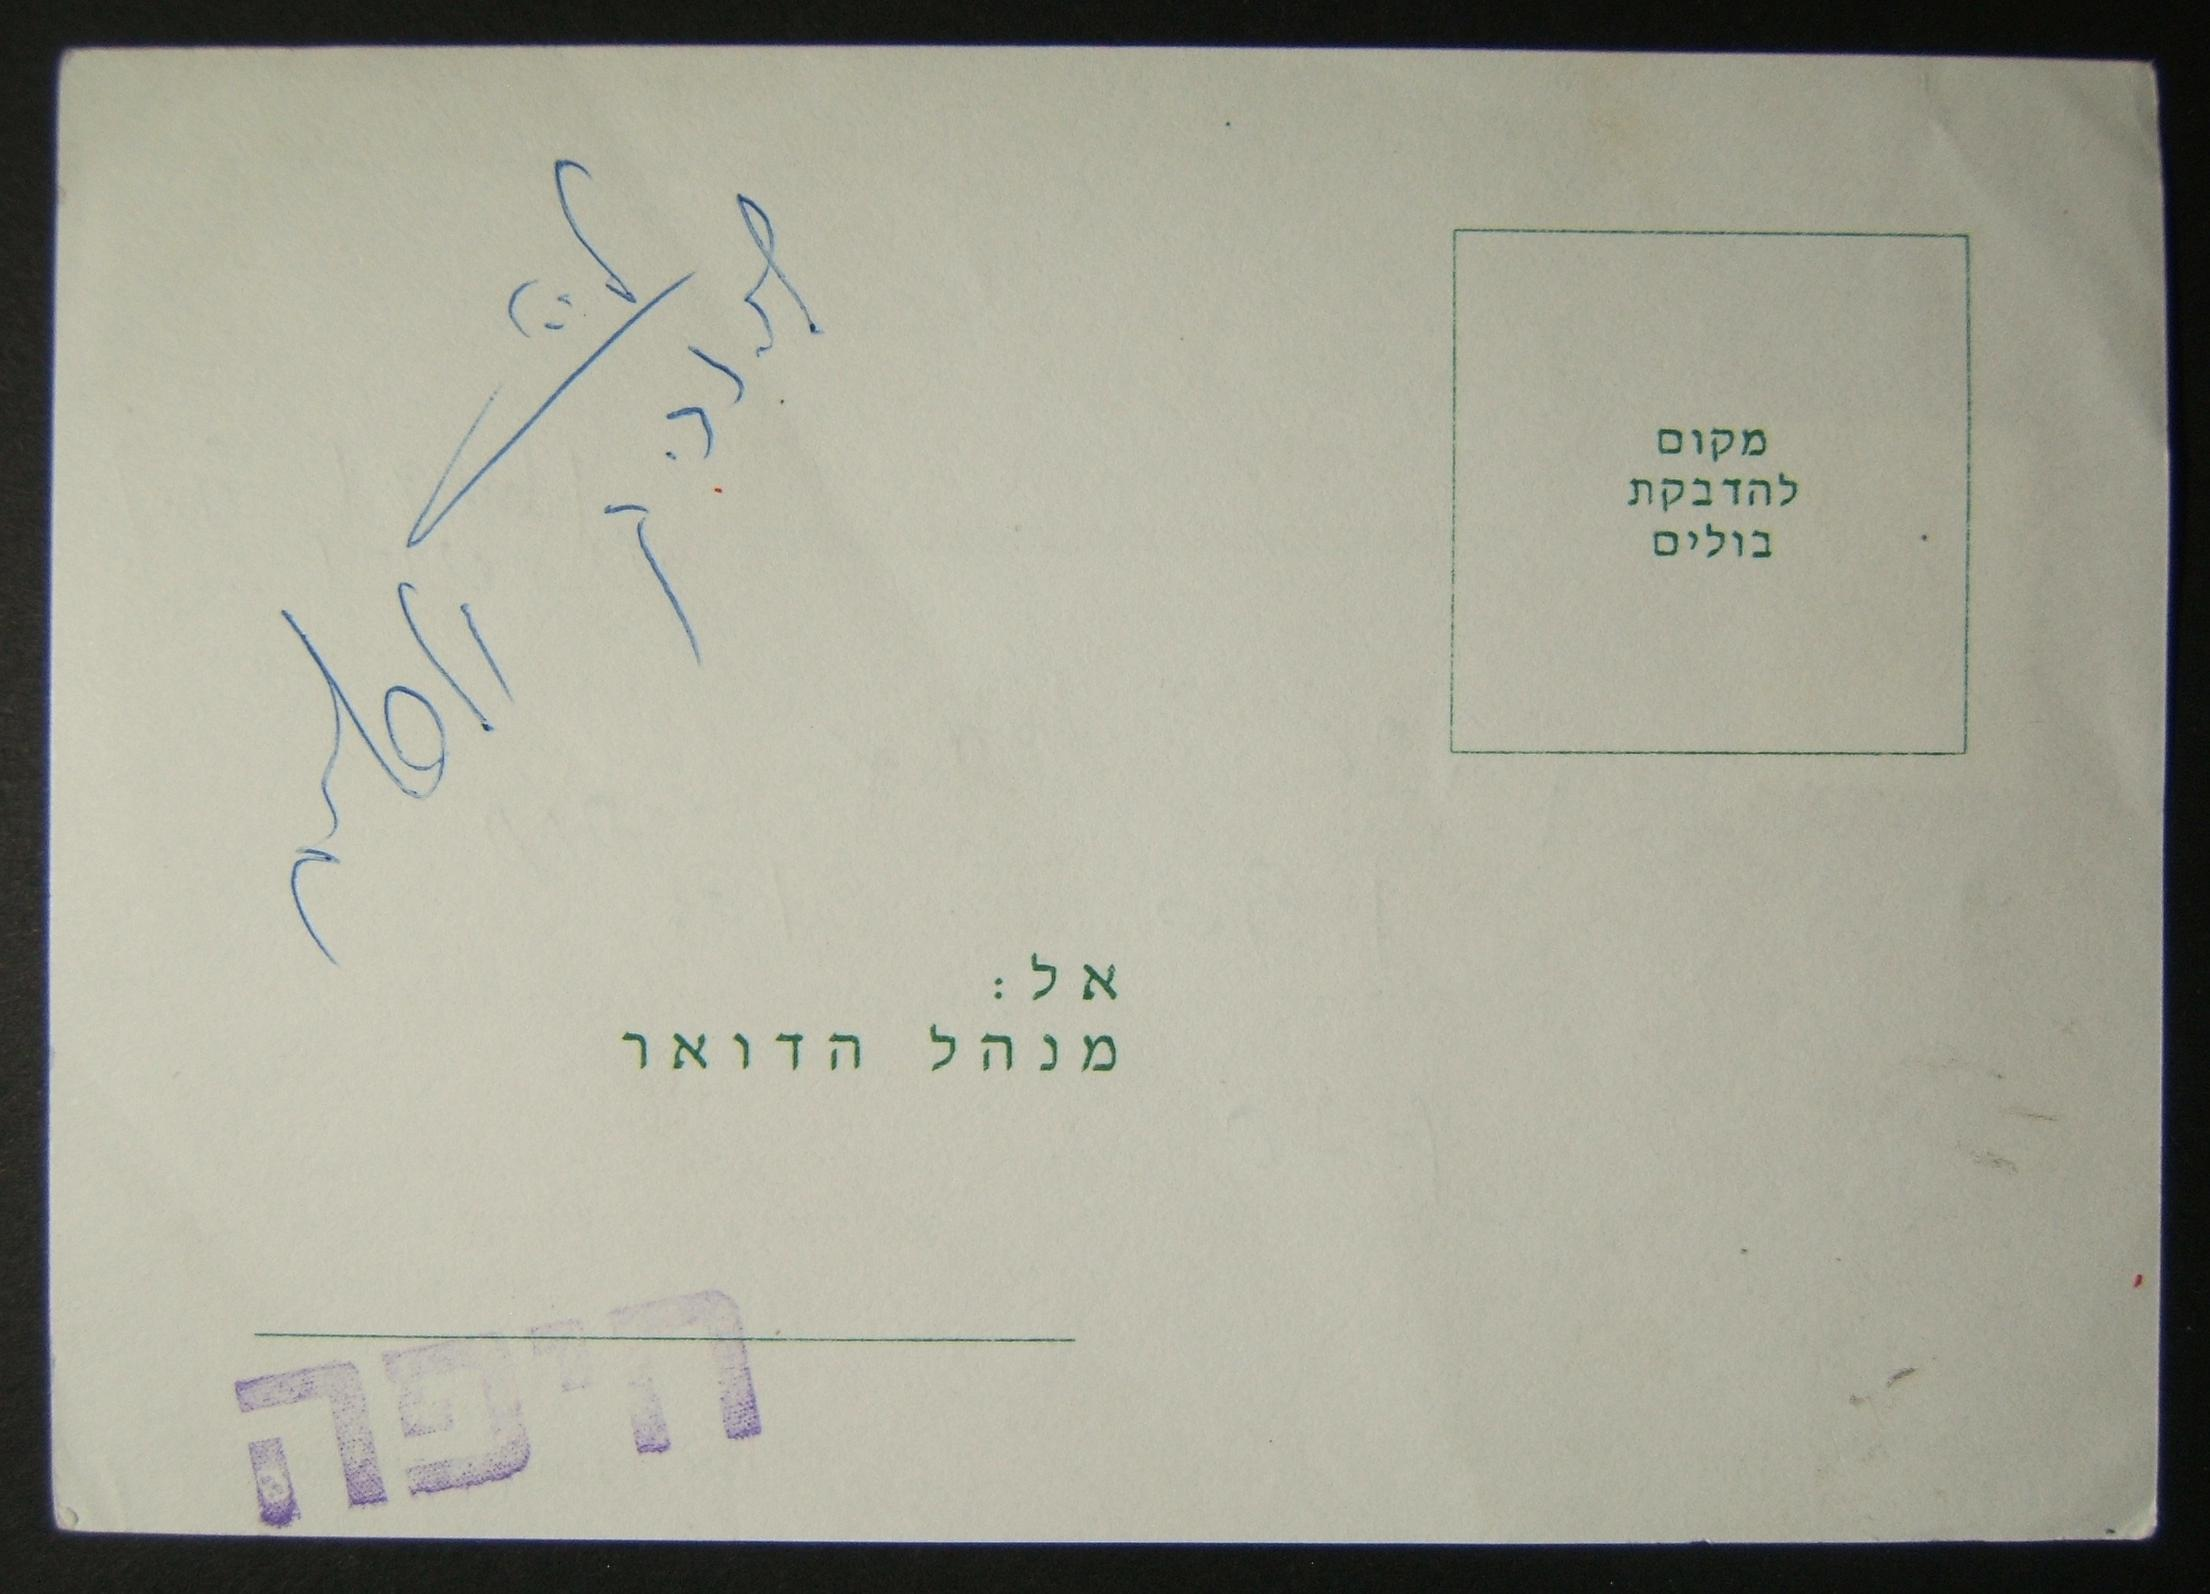 1996 DO-77 rate period franked taxation notice: 20 NOV 1996 HE dated